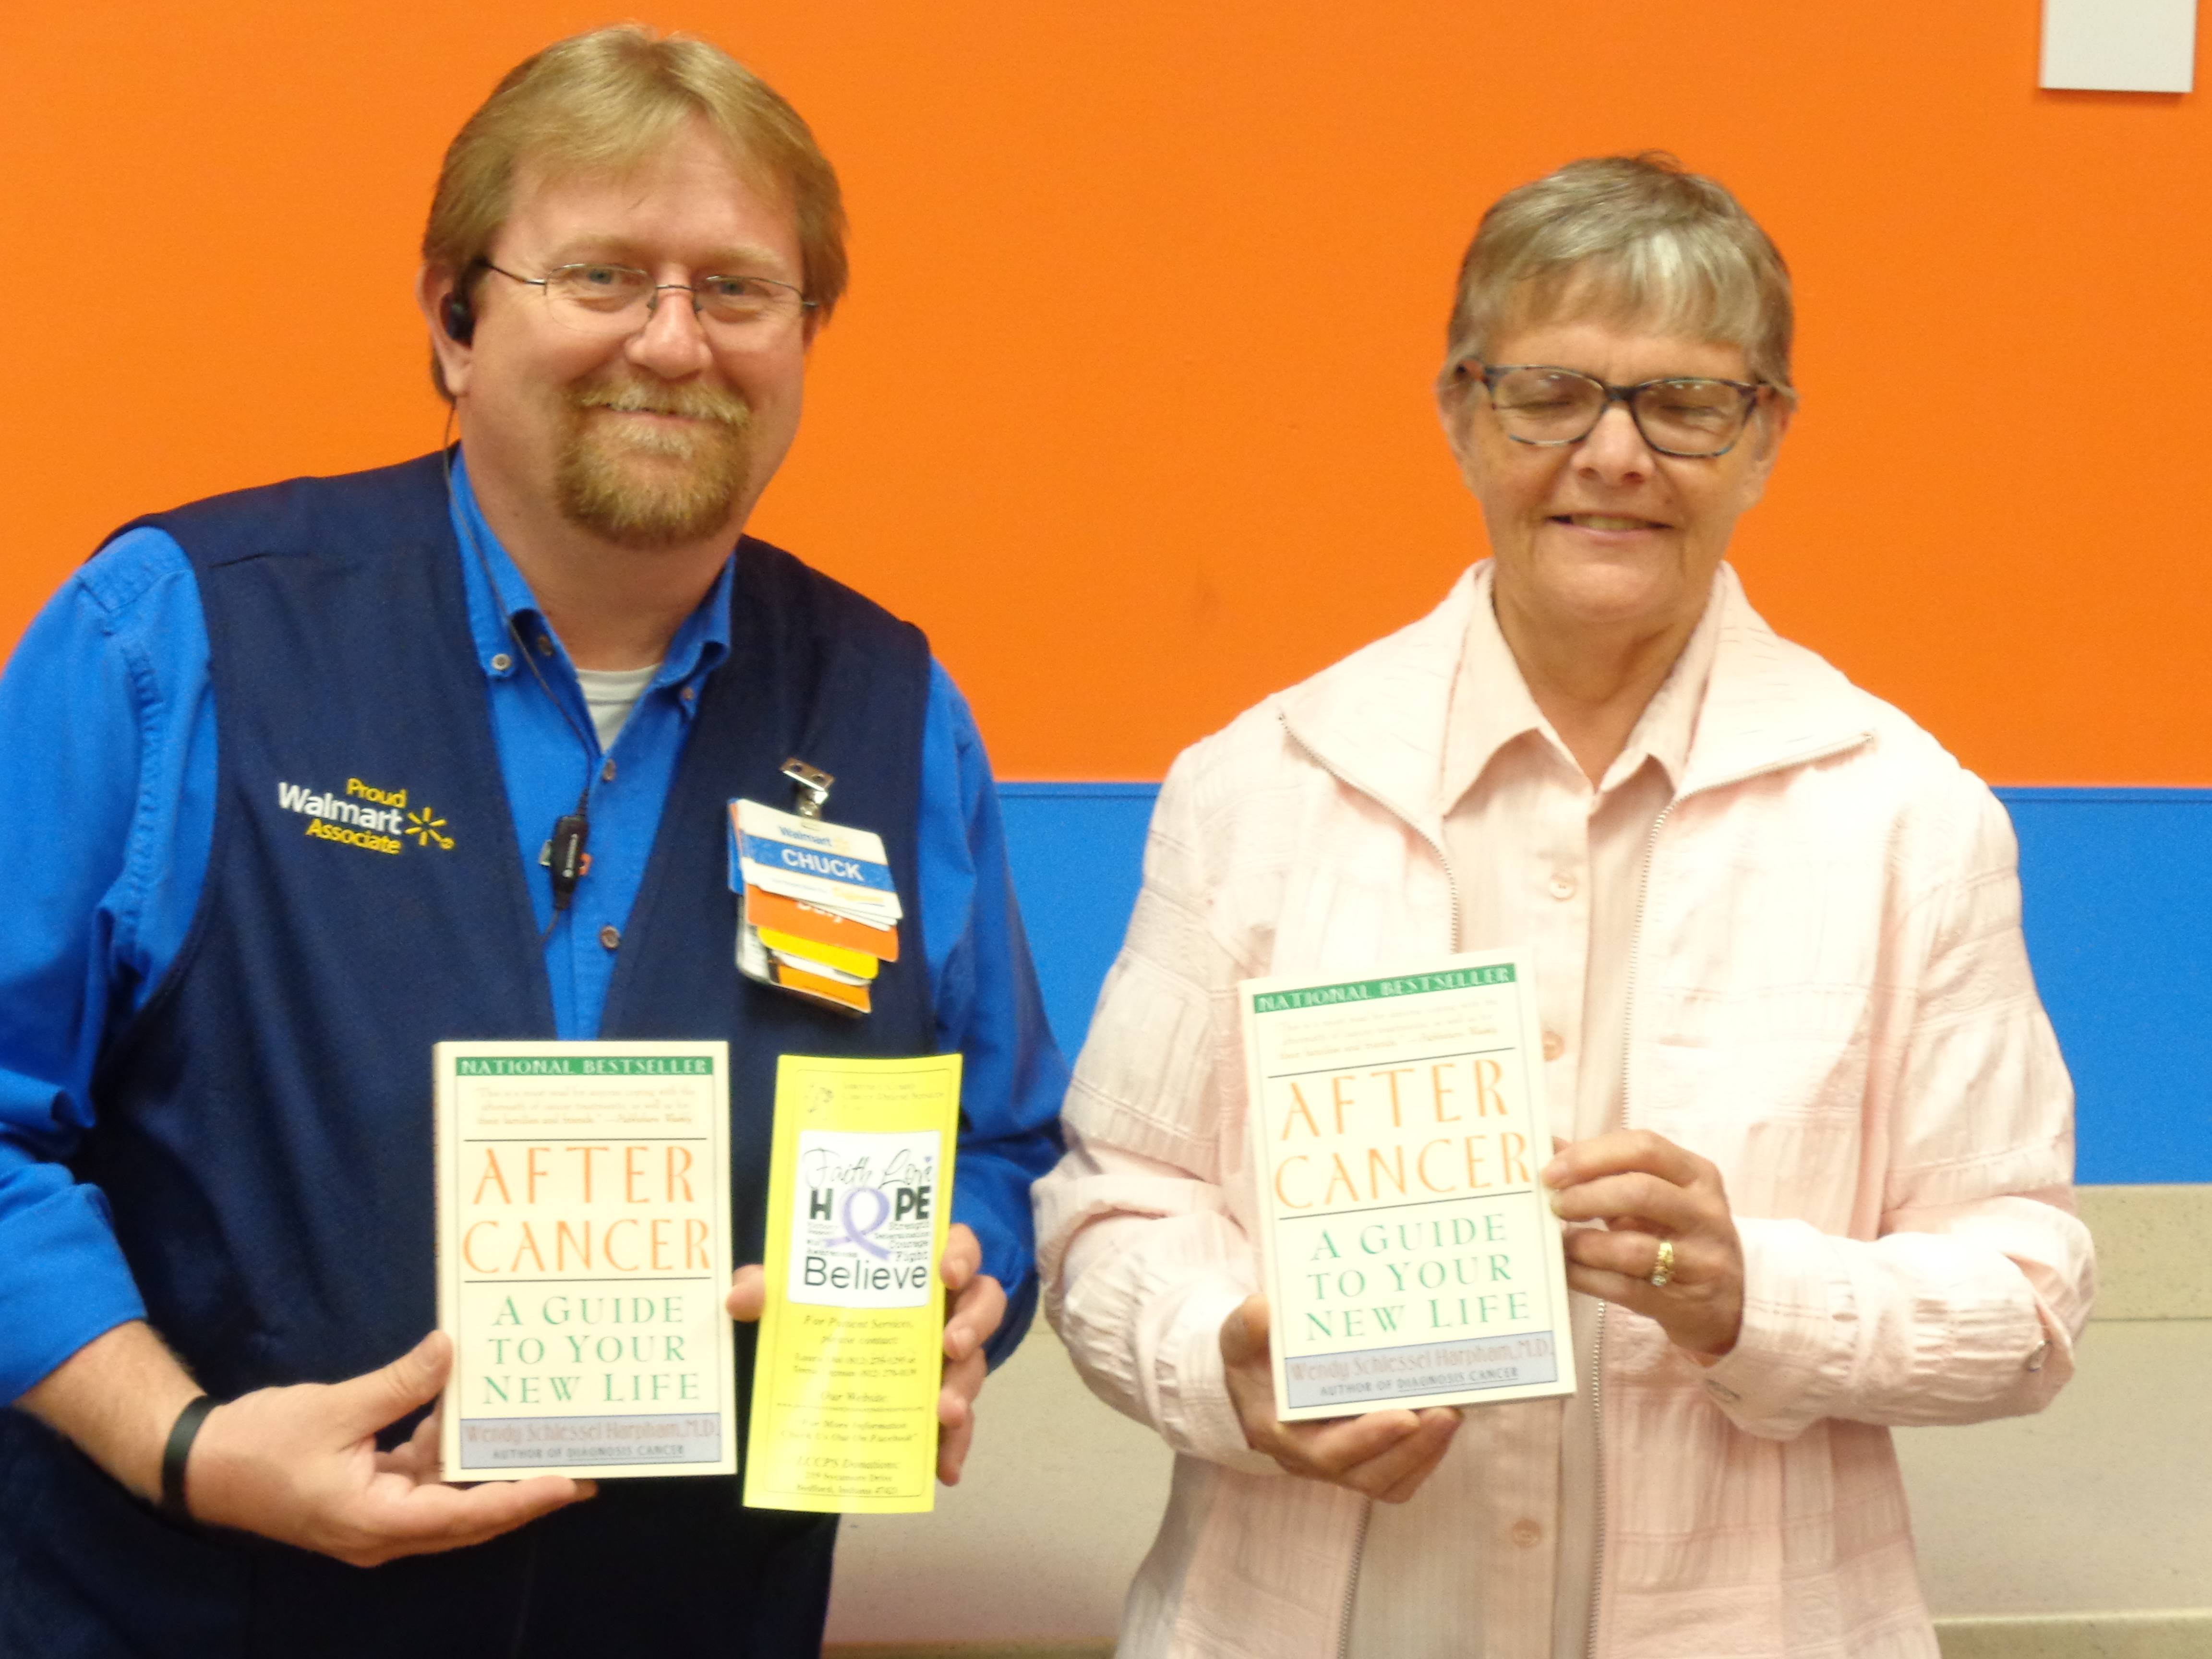 Walmart Grant for uplifting books.